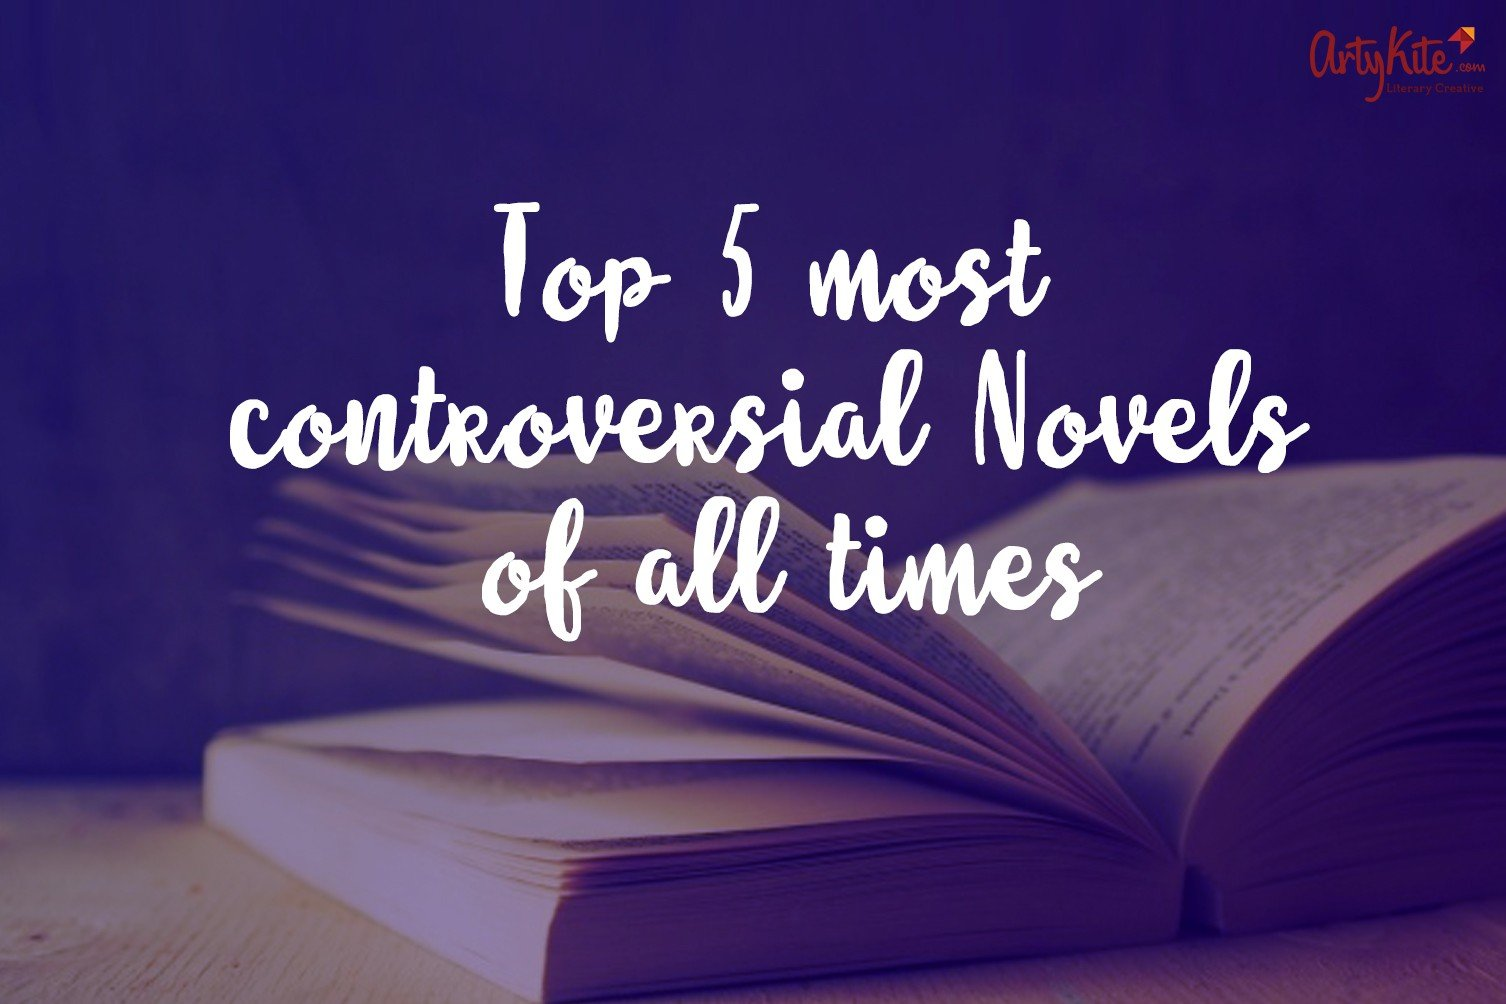 Most Controversial Novels of all times